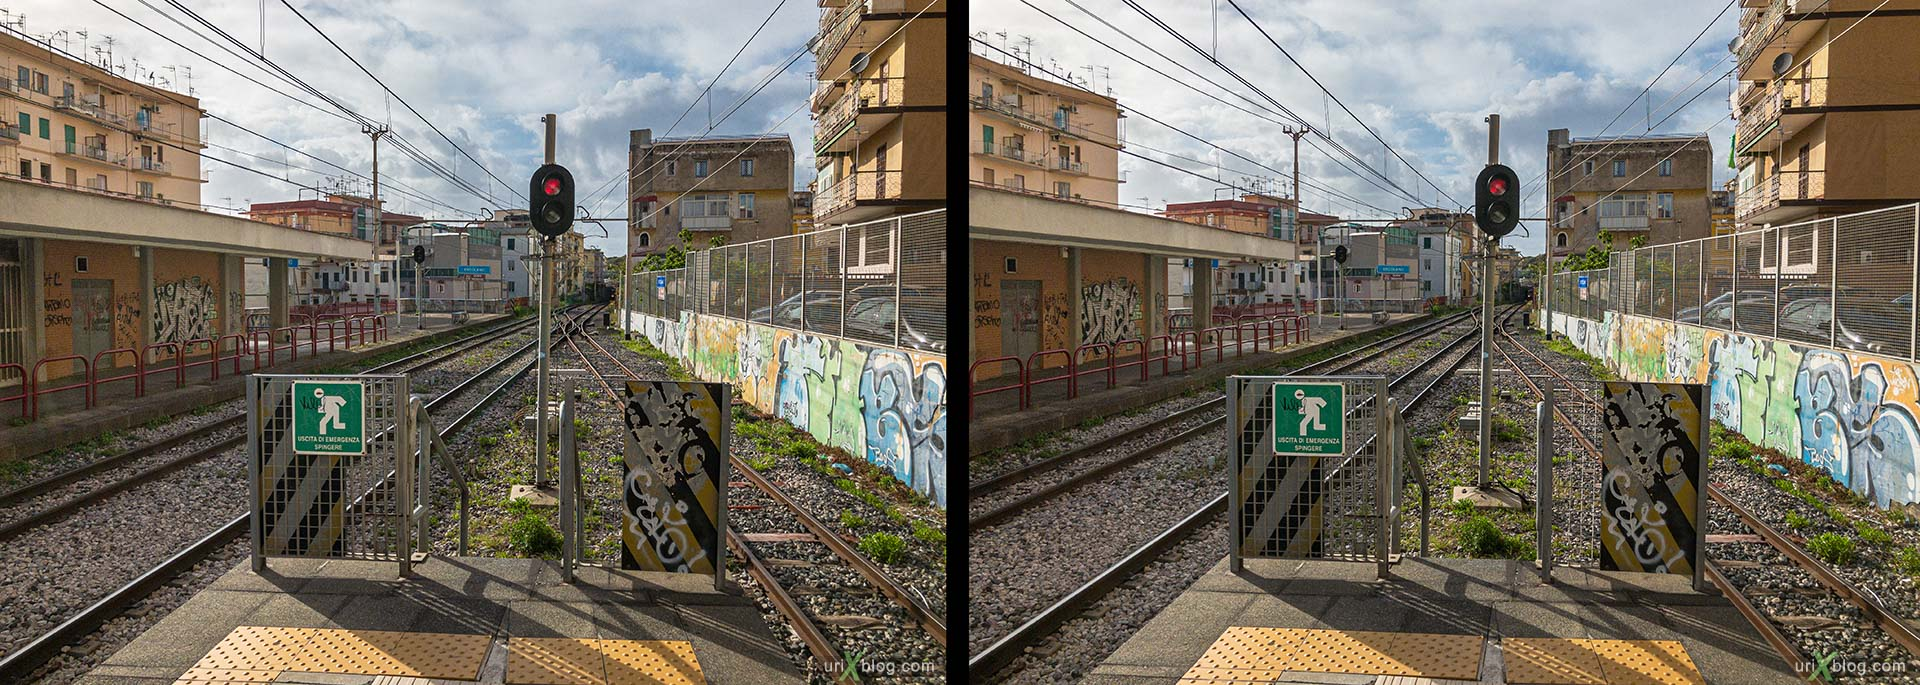 Ercolano, station, Pompei, Italy, 3D, stereo pair, cross-eyed, crossview, cross view stereo pair, stereoscopic